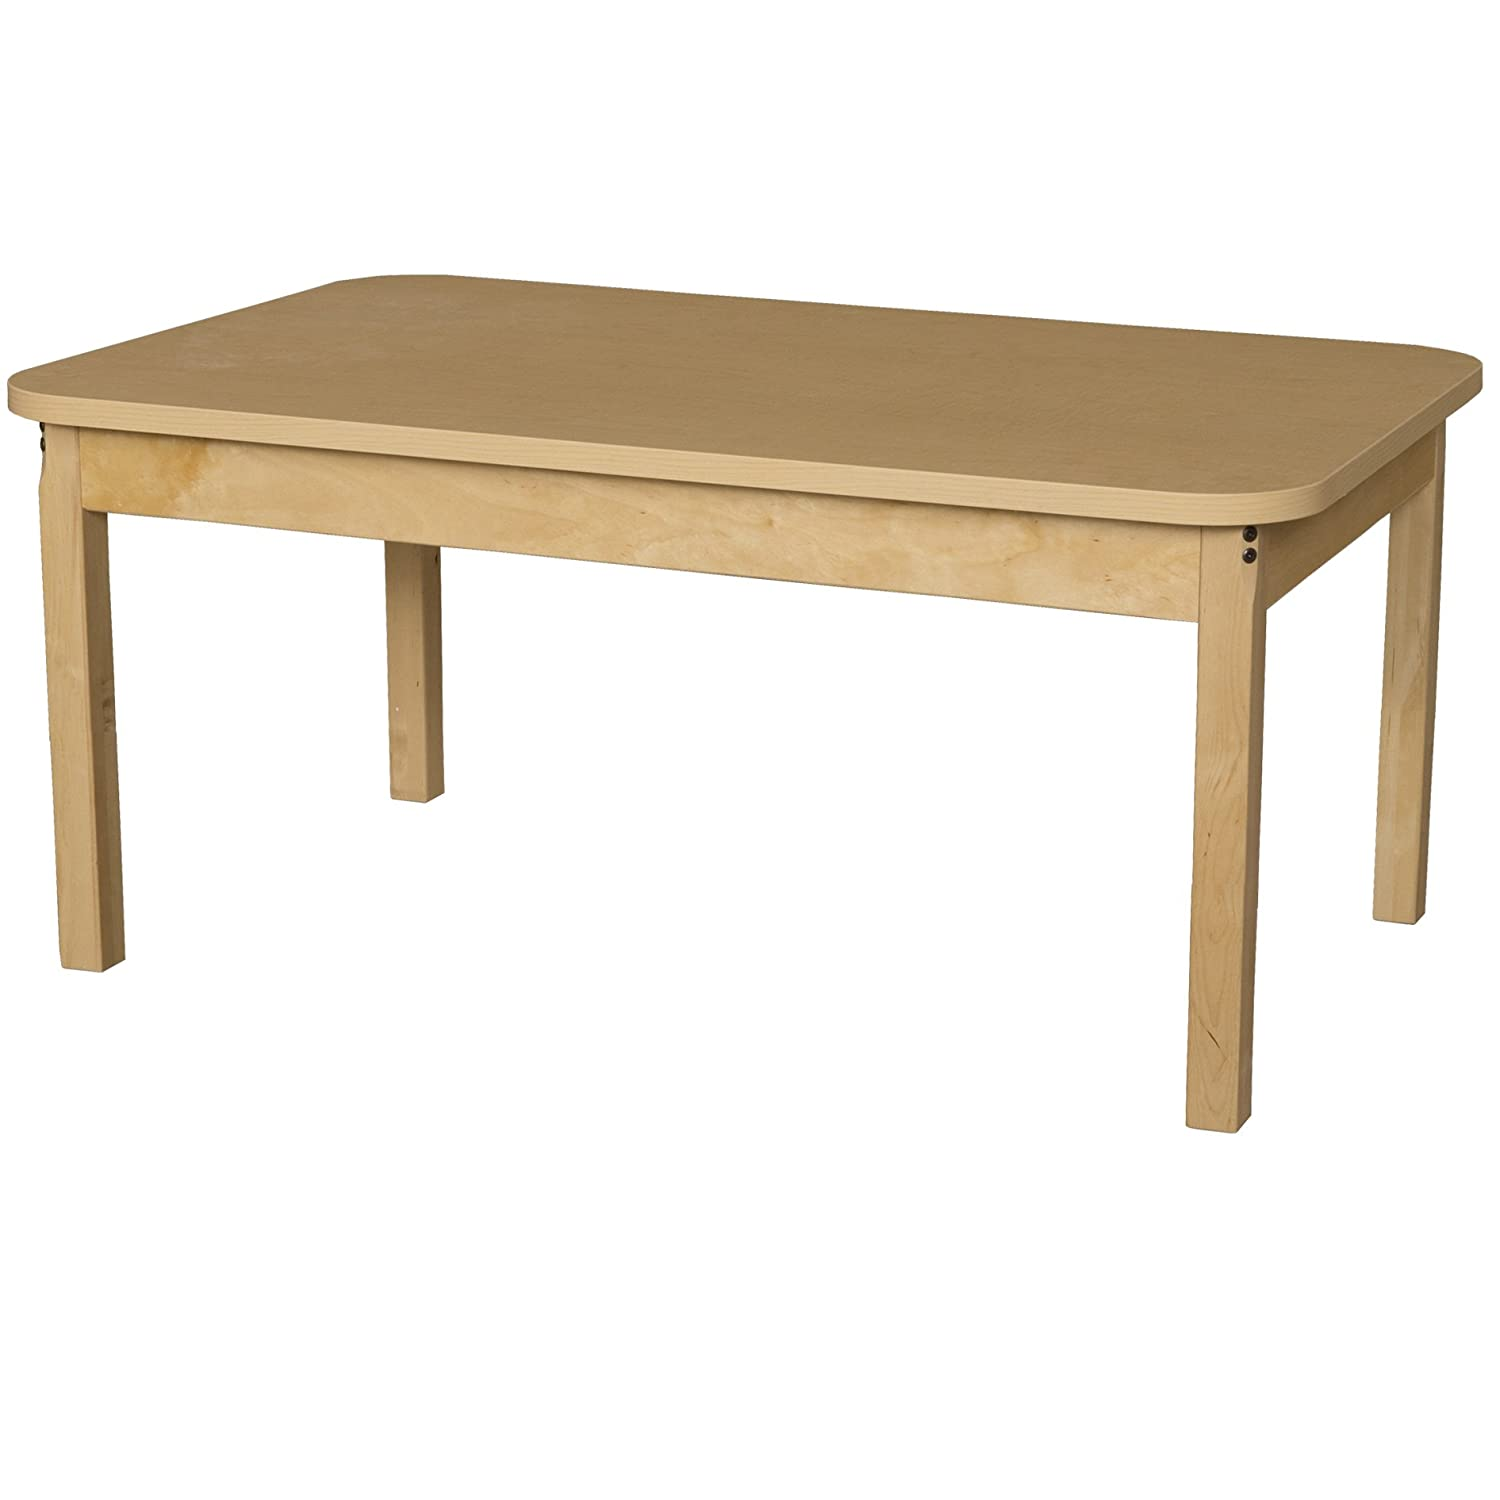 "Wood Designs HPL304816 Rectangle High Pressure Laminate Table with Hardwood Legs-16"", 17"" Height, 30"" Width, 48"" Length"